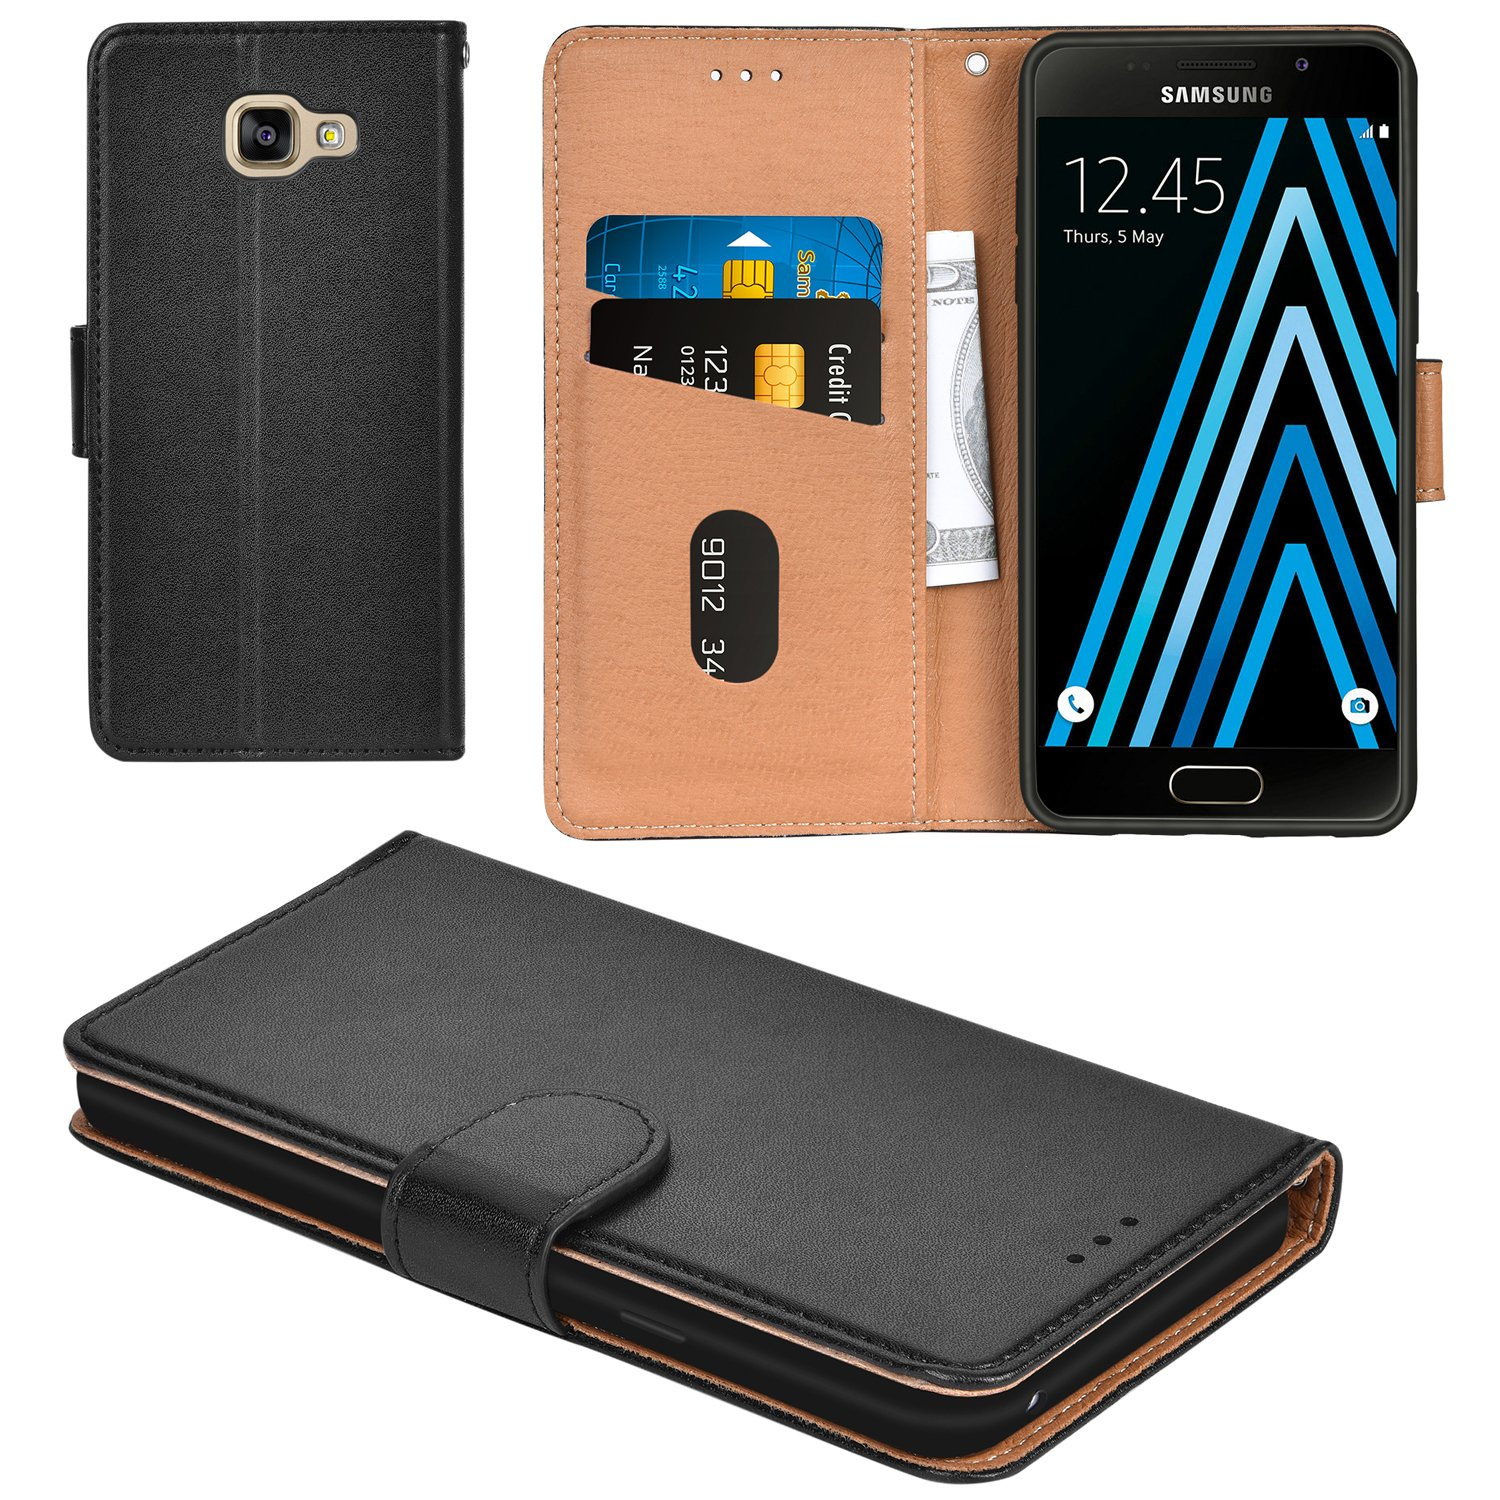 outlet store 8397b 28743 Galaxy A3 2016 Case, Aicoco Flip Cover Leather, Phone Wallet Case for  Samsung Galaxy A3 2016 - Black